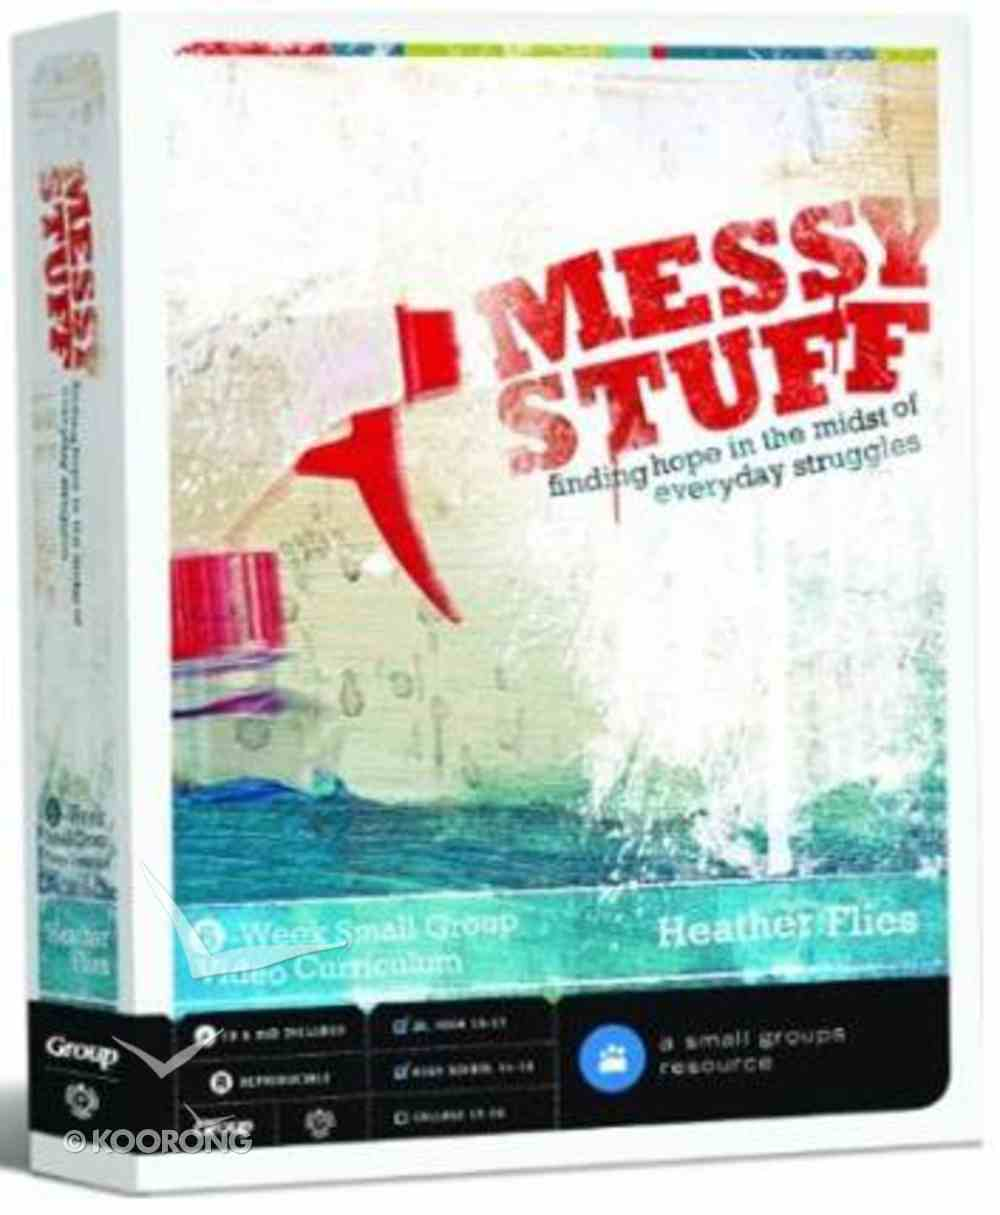 Messy Stuff (Cd & Dvd) Pack